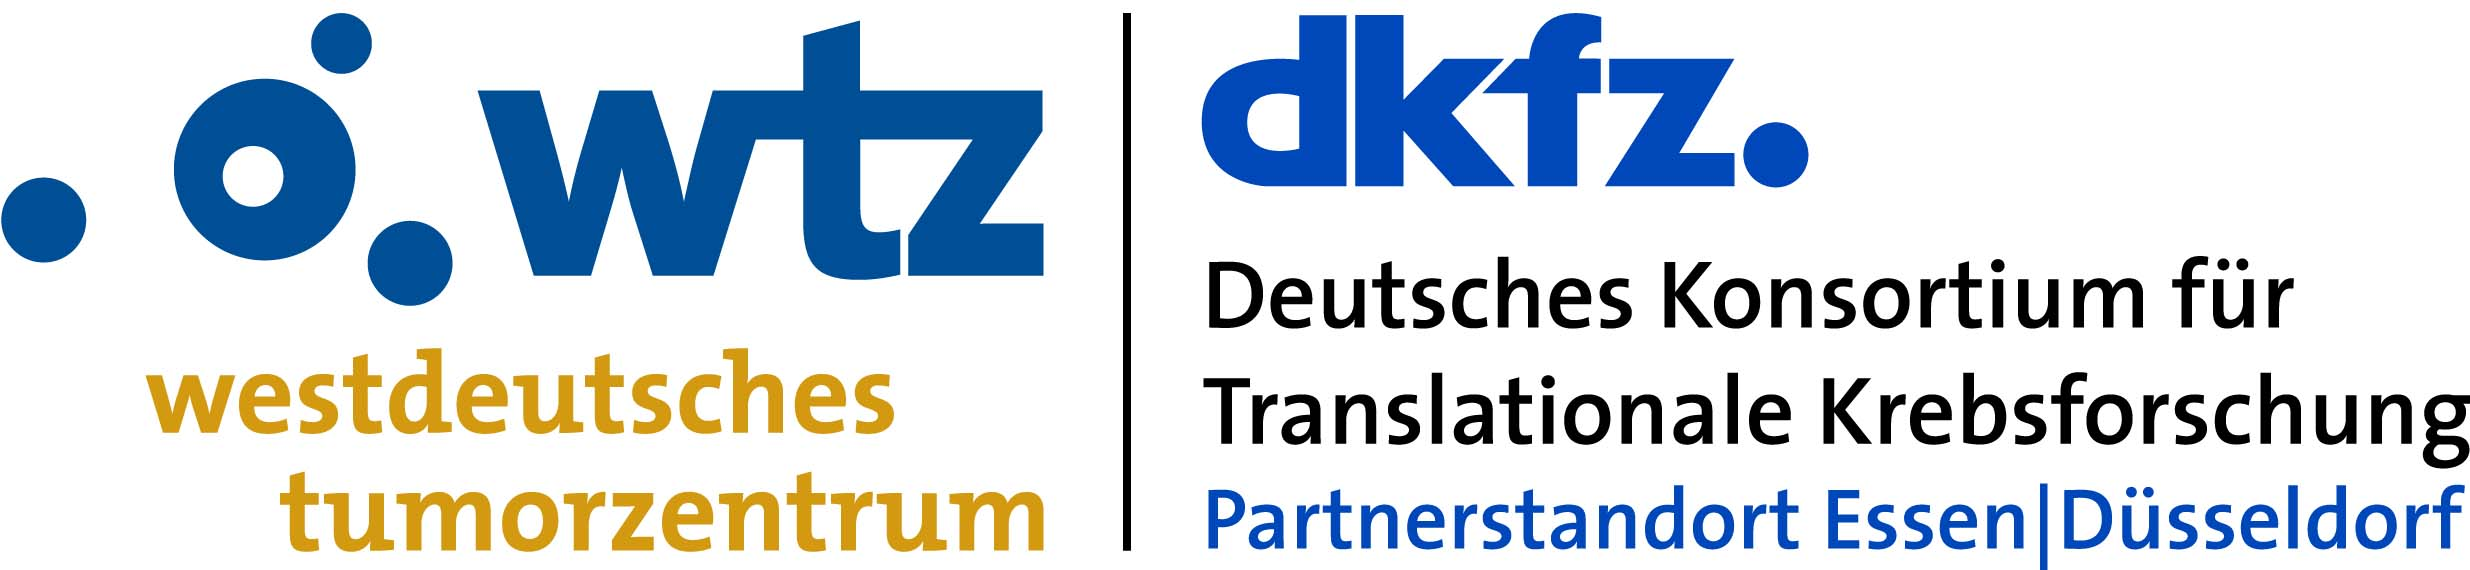 DKTK Logo deutsch